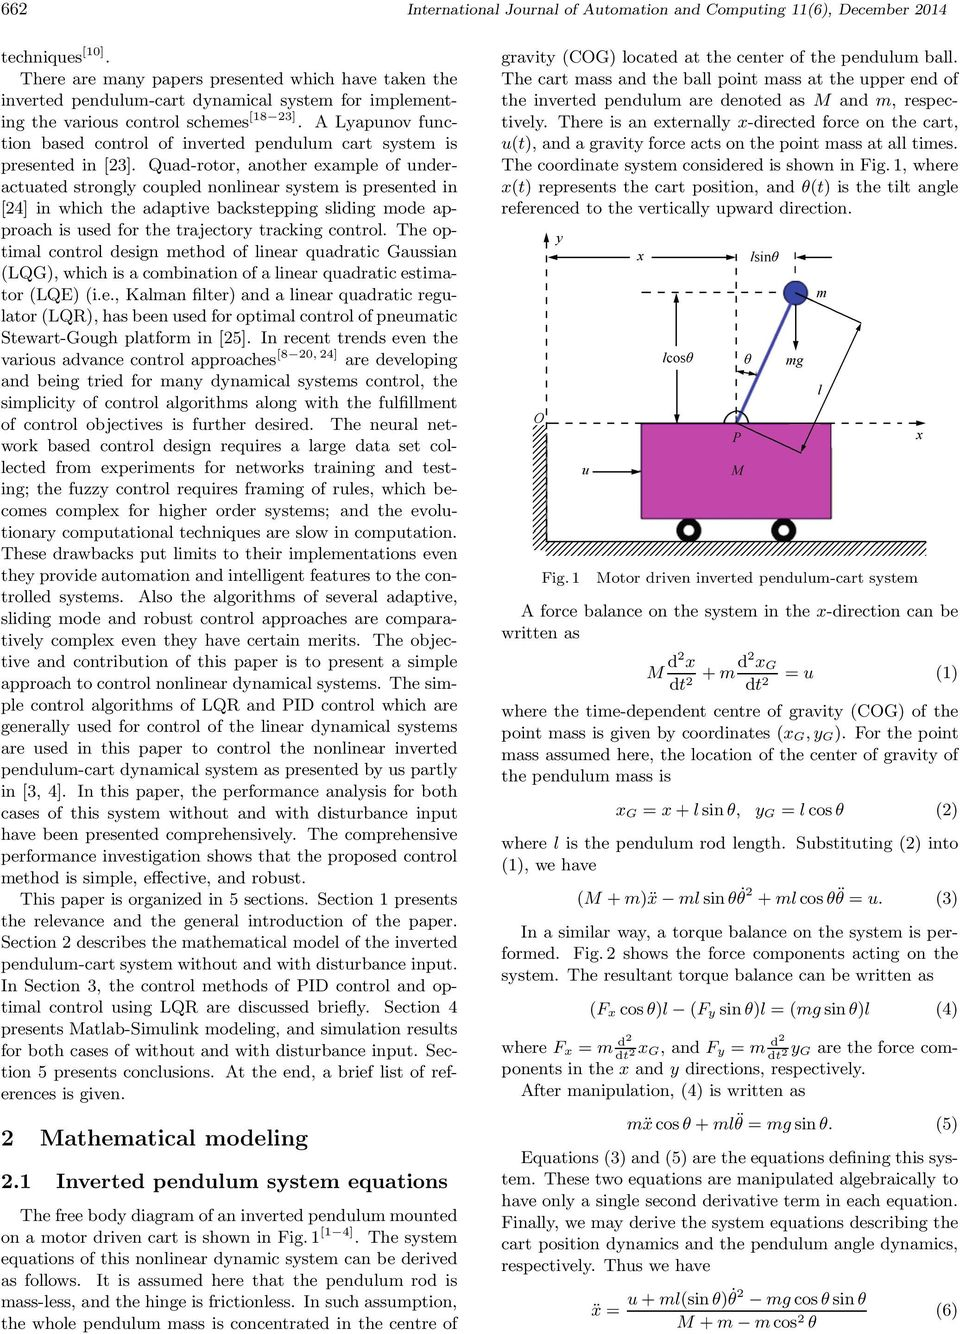 Optimal Control Of Nonlinear Inverted Pendulum System Using Pid Example 2 Mathematical Diagram A Lyapunov Function Based Cart Is Presented In 23